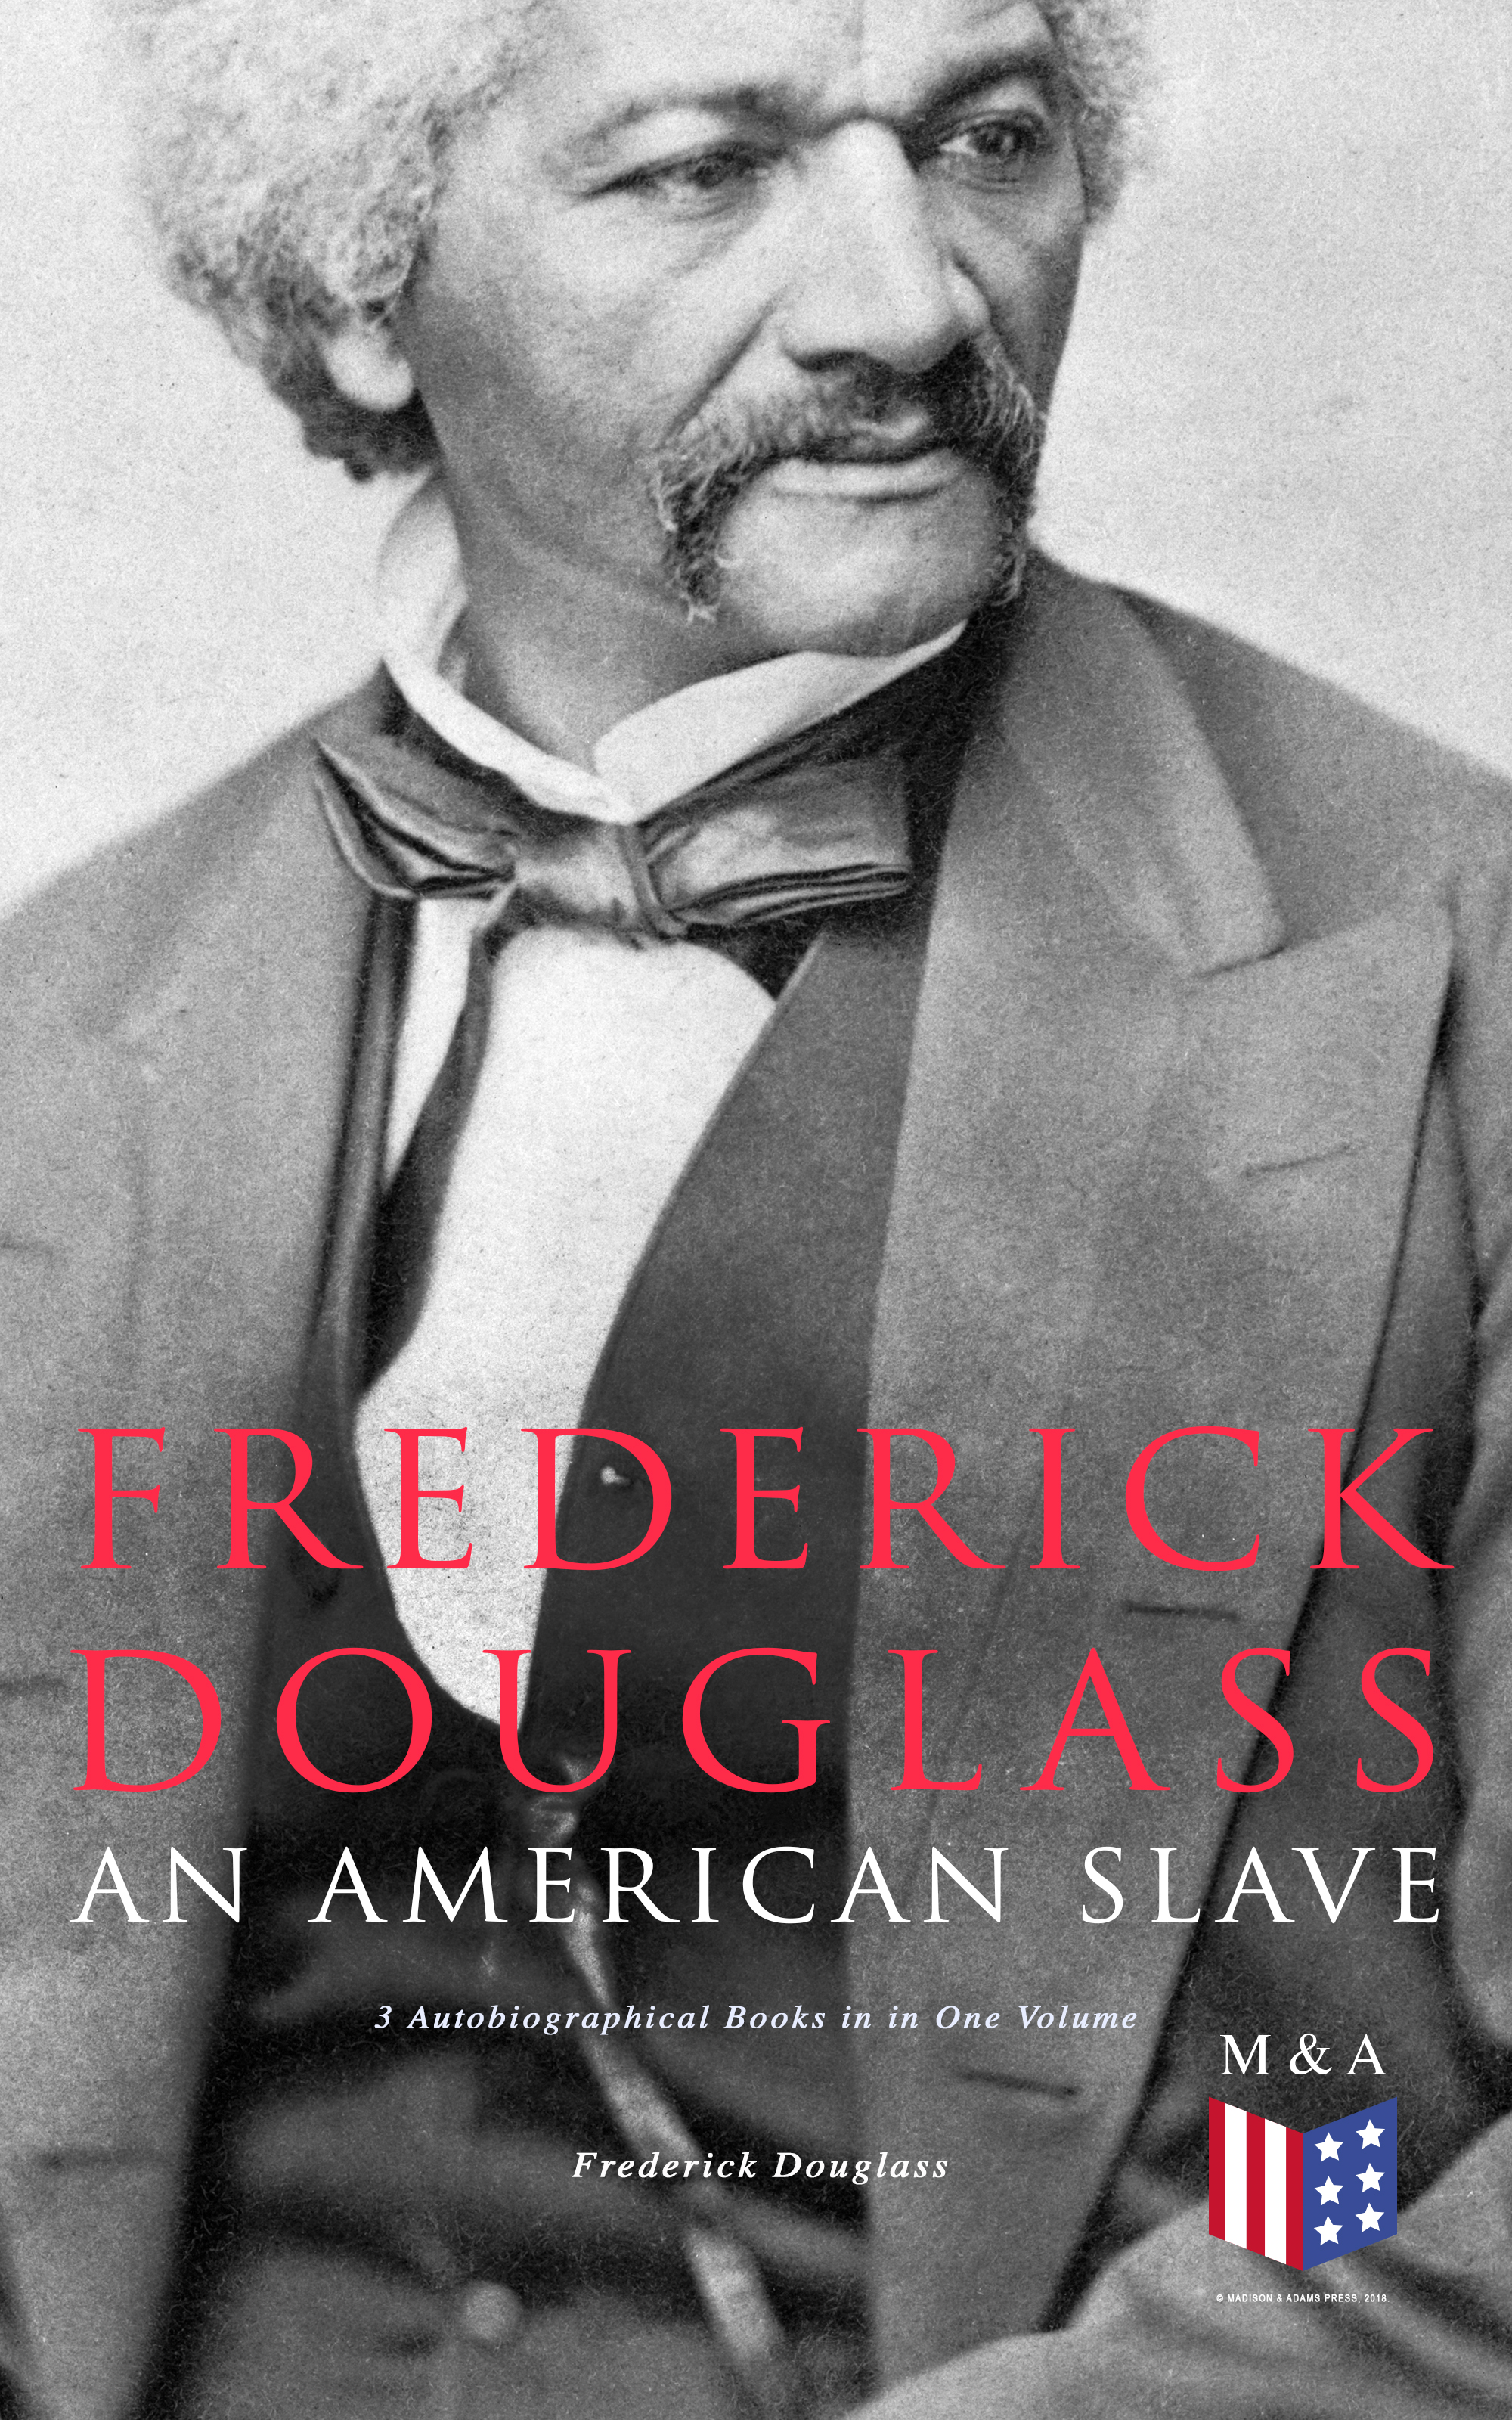 Frederick Douglass Frederick Douglass, An American Slave: 3 Autobiographical Books in in One Volume